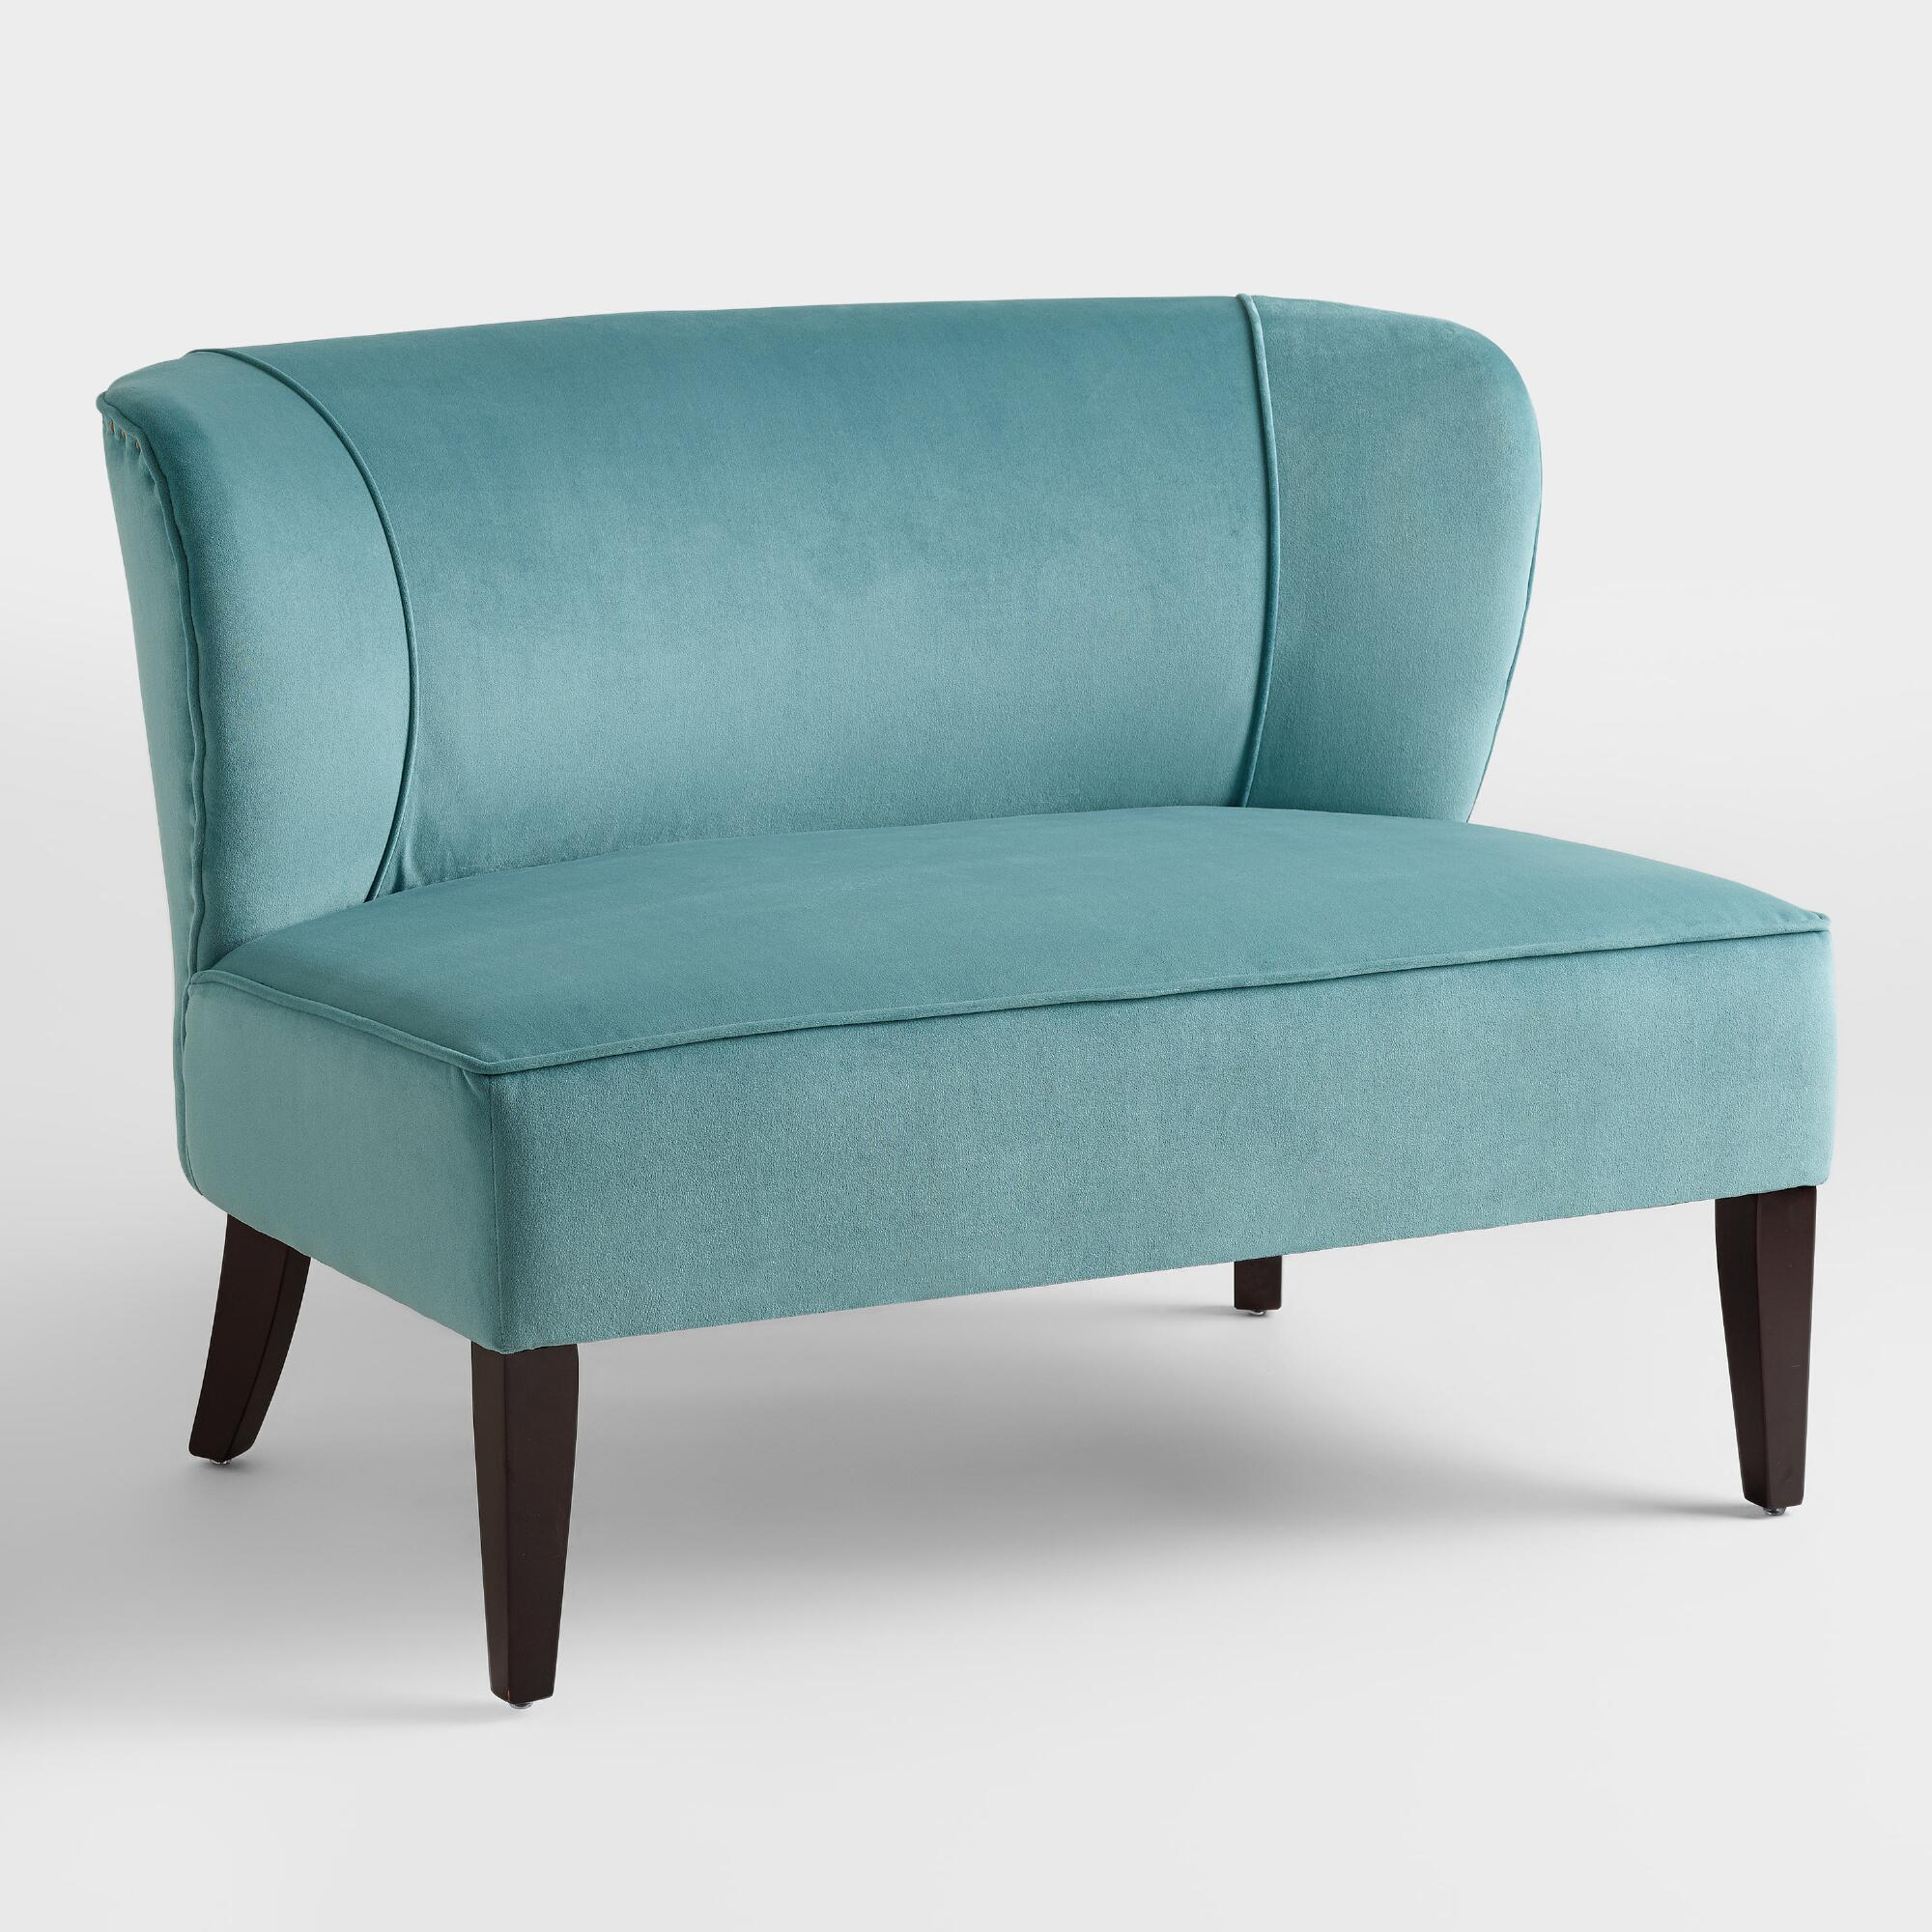 Simplicity sofas for sale - Caribbean Blue Quincy Loveseat